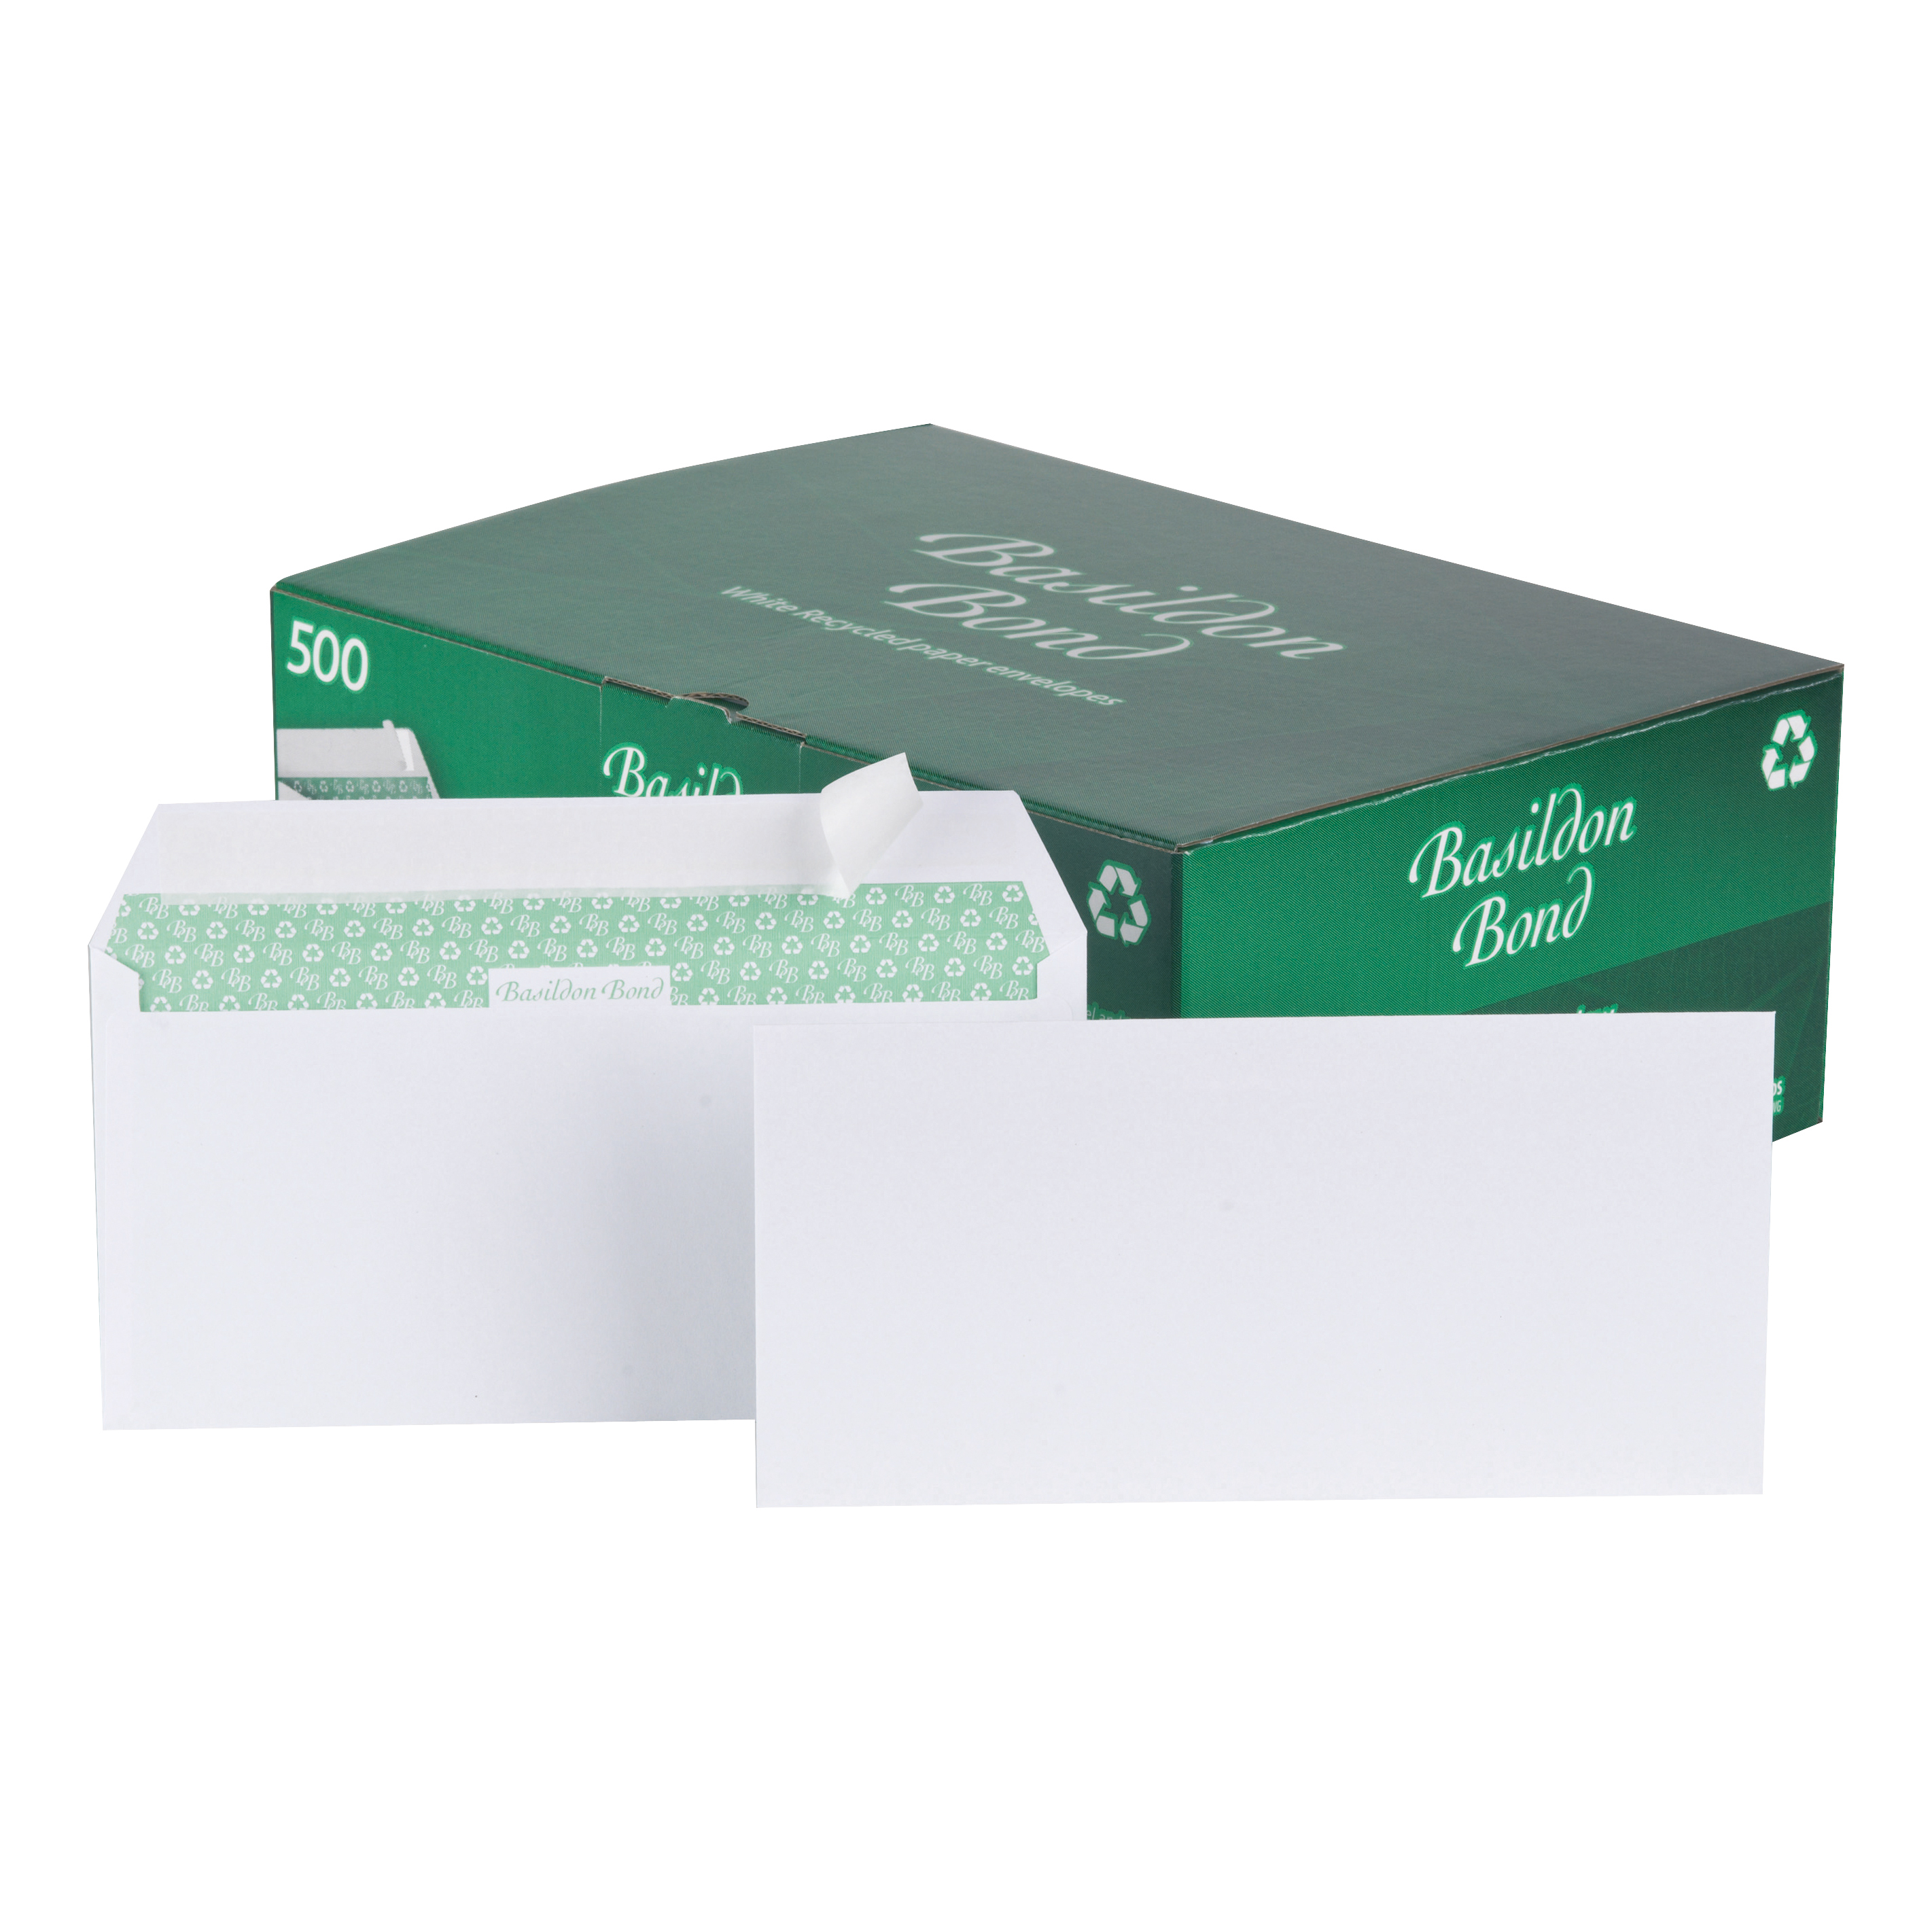 Basildon Bond Envelopes Recycled Wallet Peel & Seal 120gsm DL White Ref C80116 [Pack 500] [PRIZE DRAW]